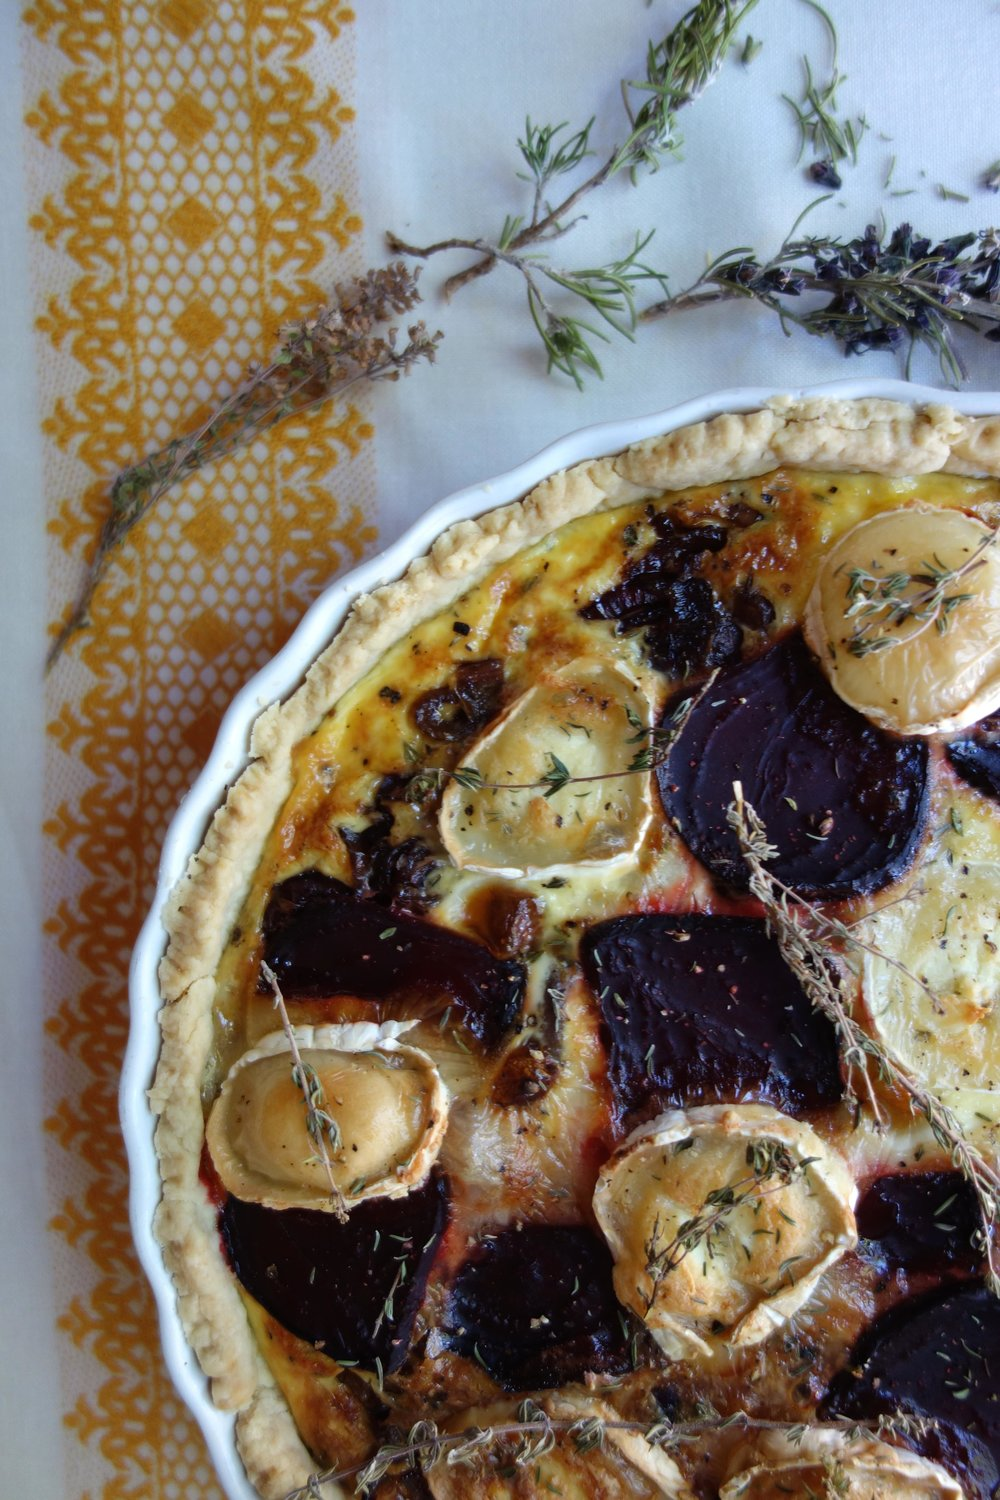 Goat cheese and beetroot tart with homemade pastry.